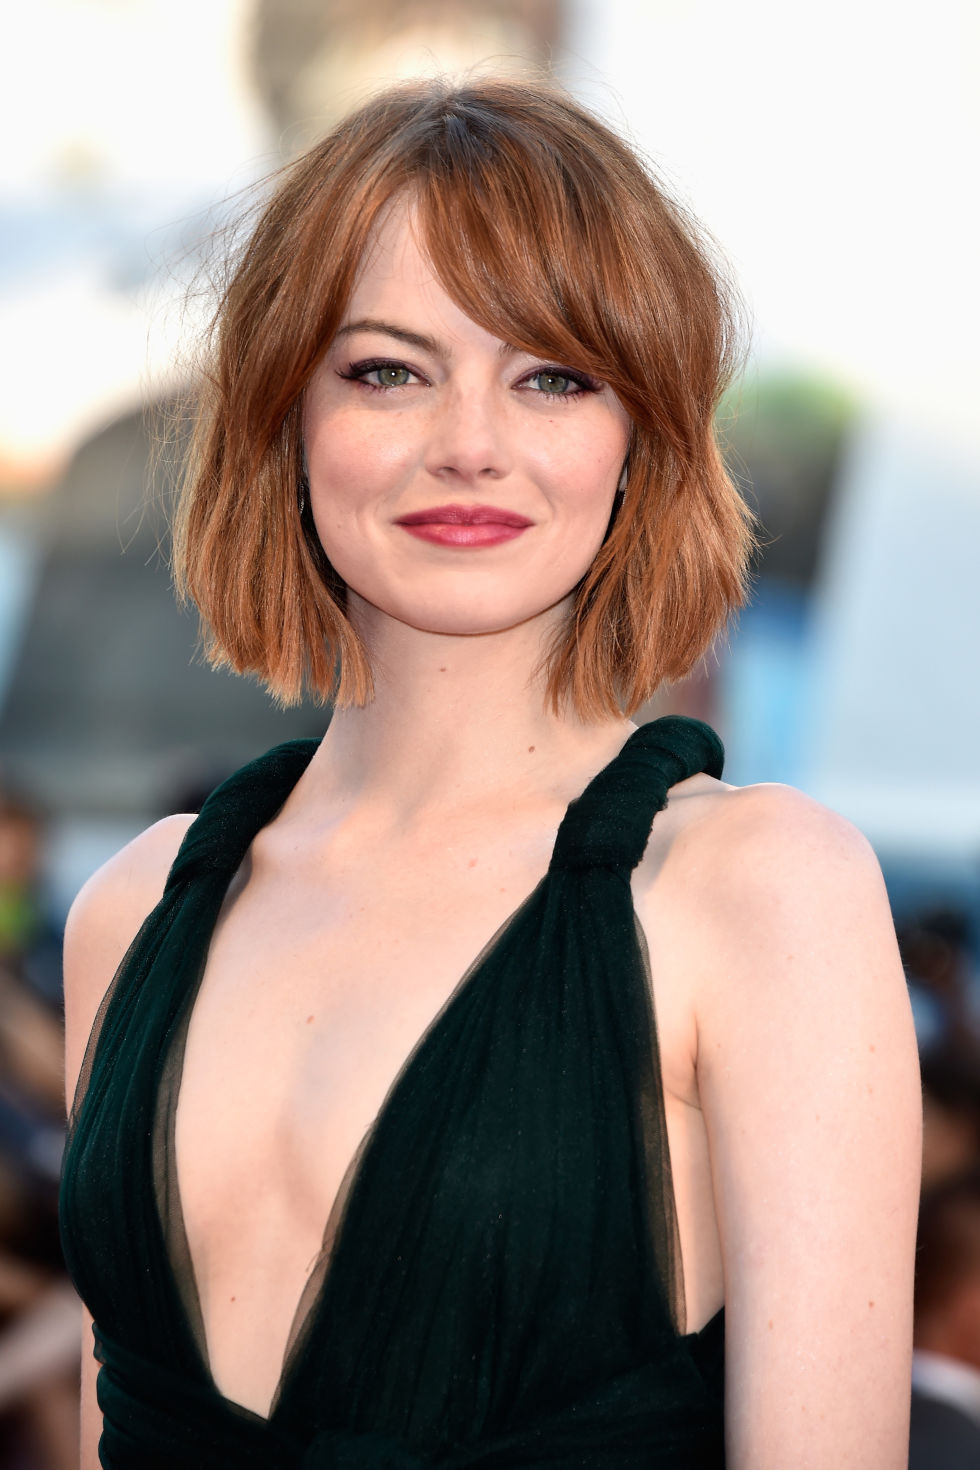 50 hairstyles for round faces - best haircuts for round face shape